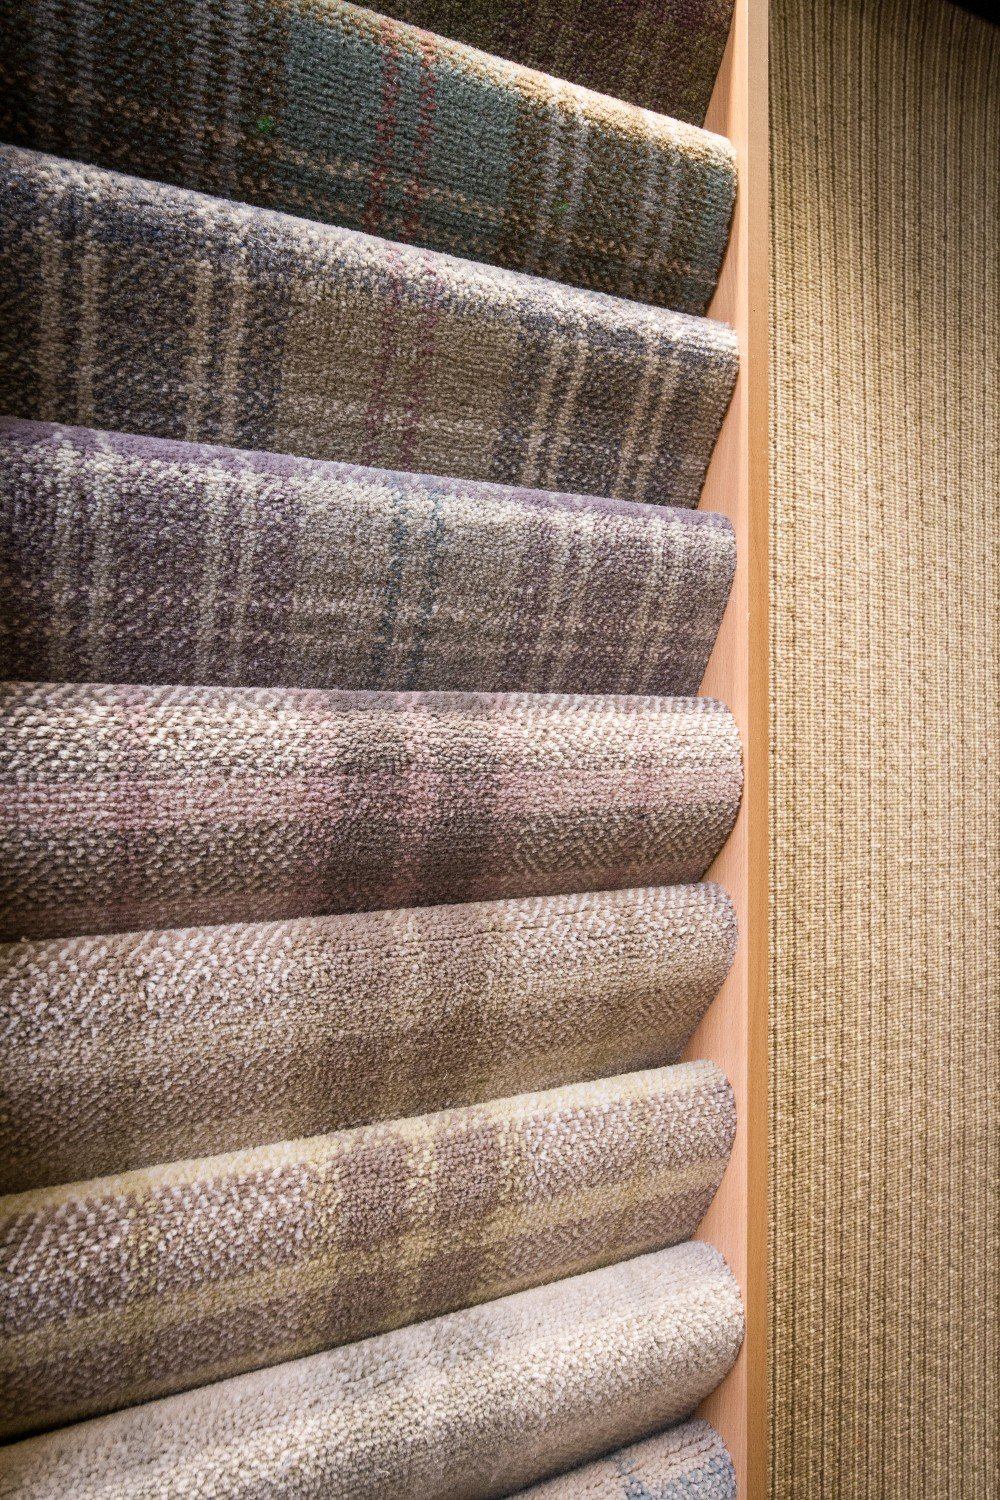 Full range of carpets